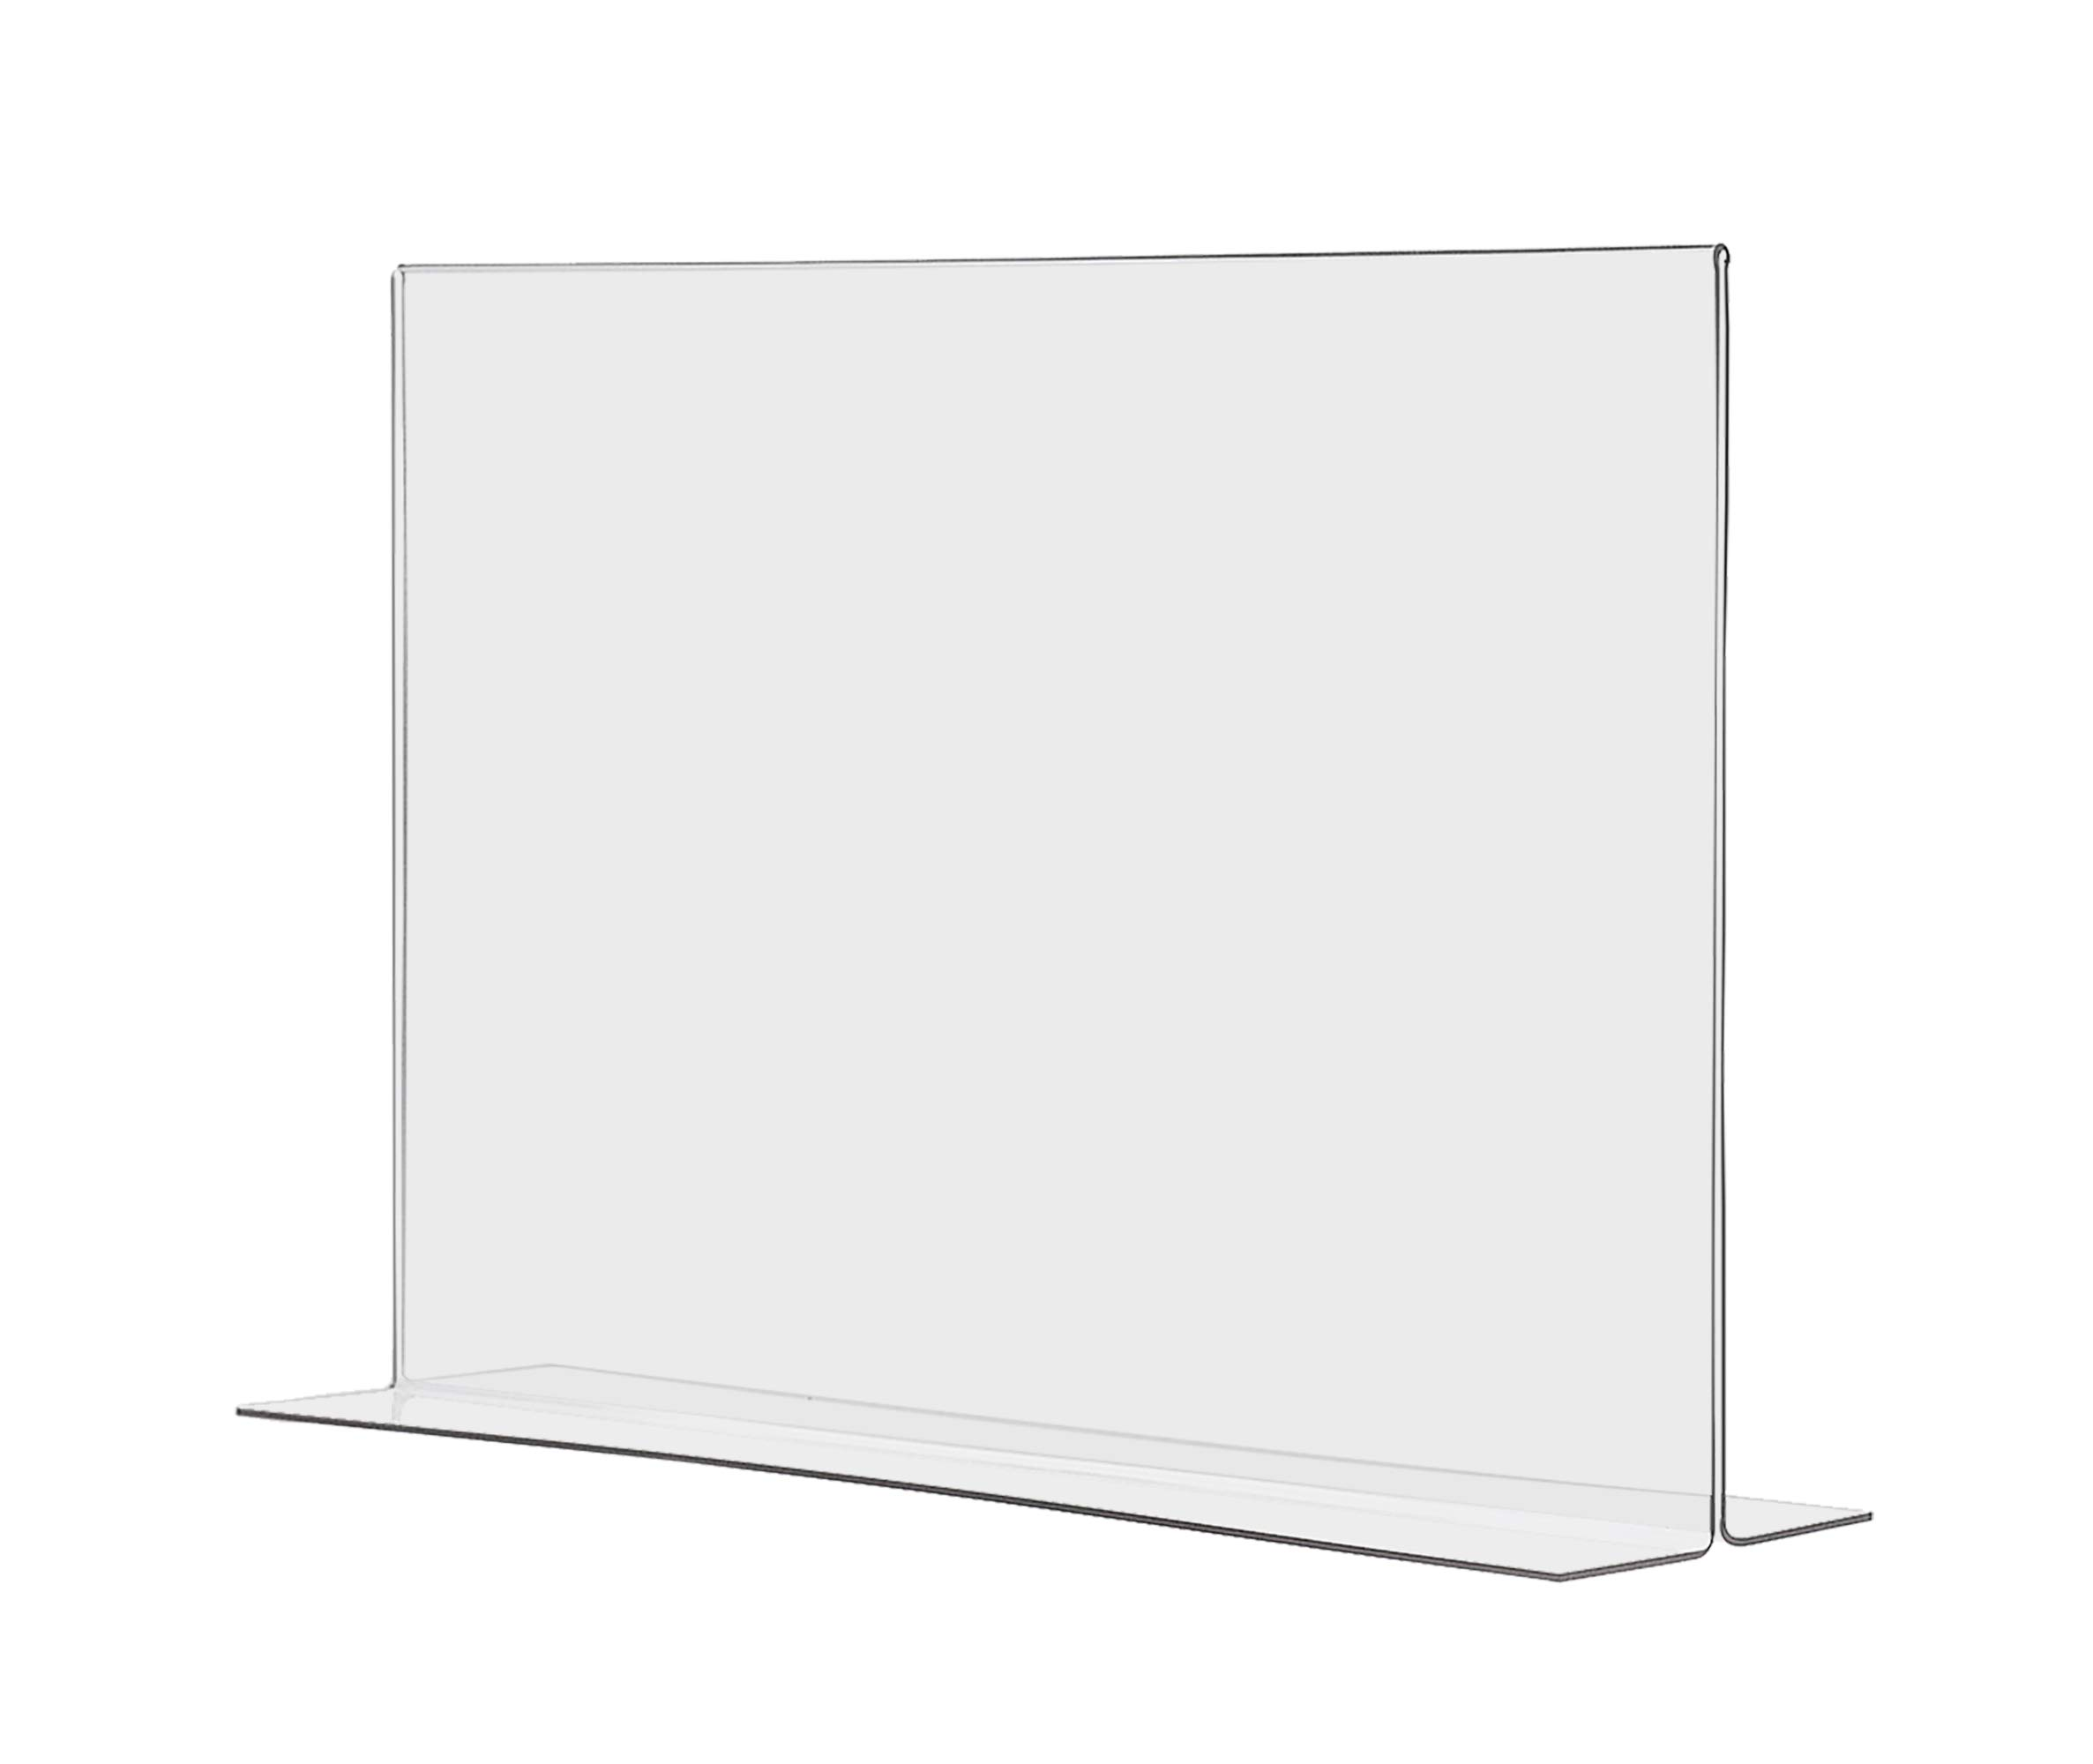 "Marketing Holders Tabletop Sign Holder for Posters Advertisements Flyers Informational Sheet Signage Frames Countertop Lucite Picture Frame 17""W x 11""H Bottom Load Pack of 20"